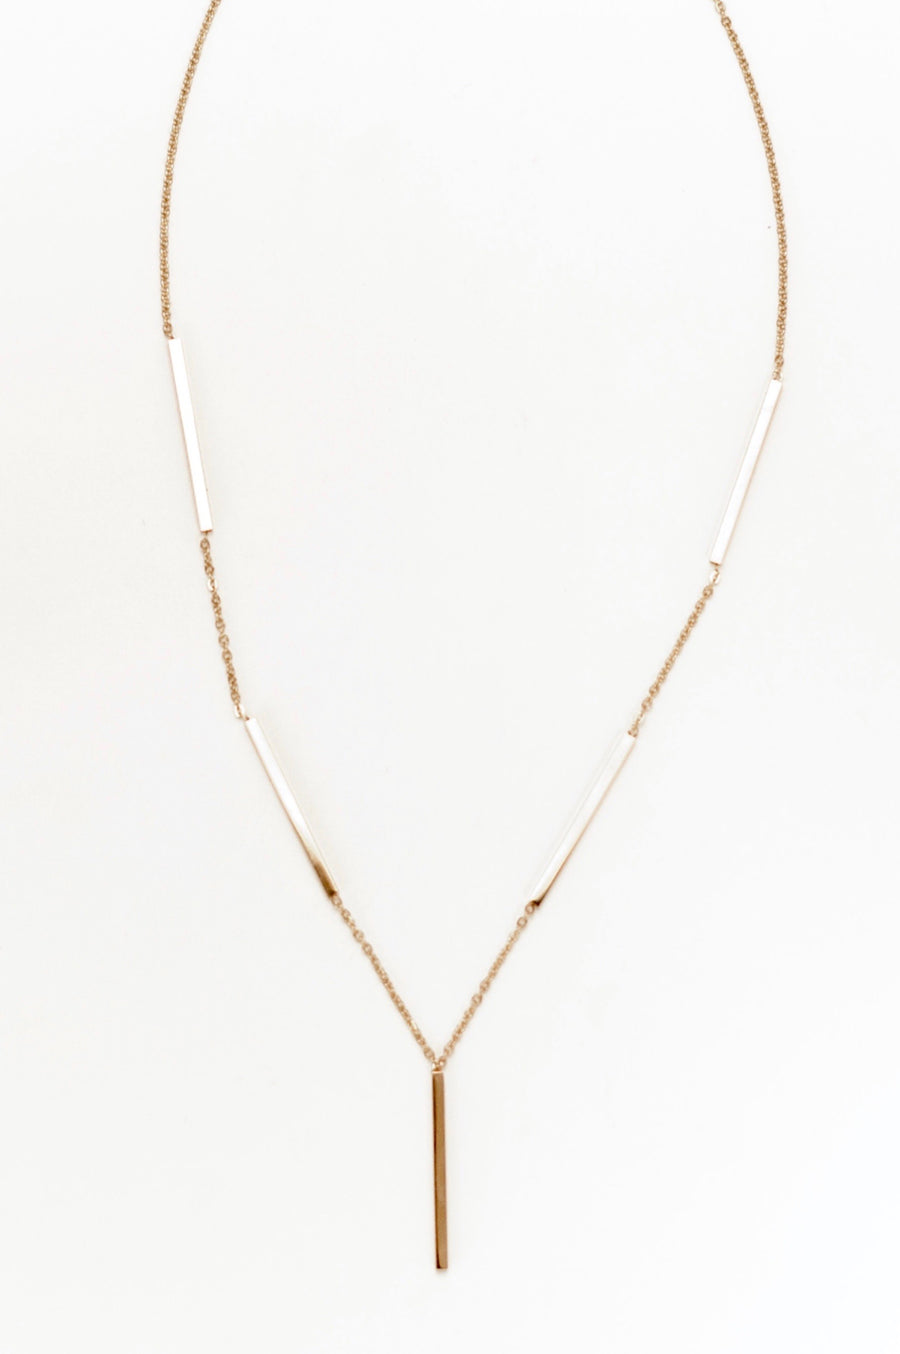 Santa Monica Necklace - Shemoni Jewelry